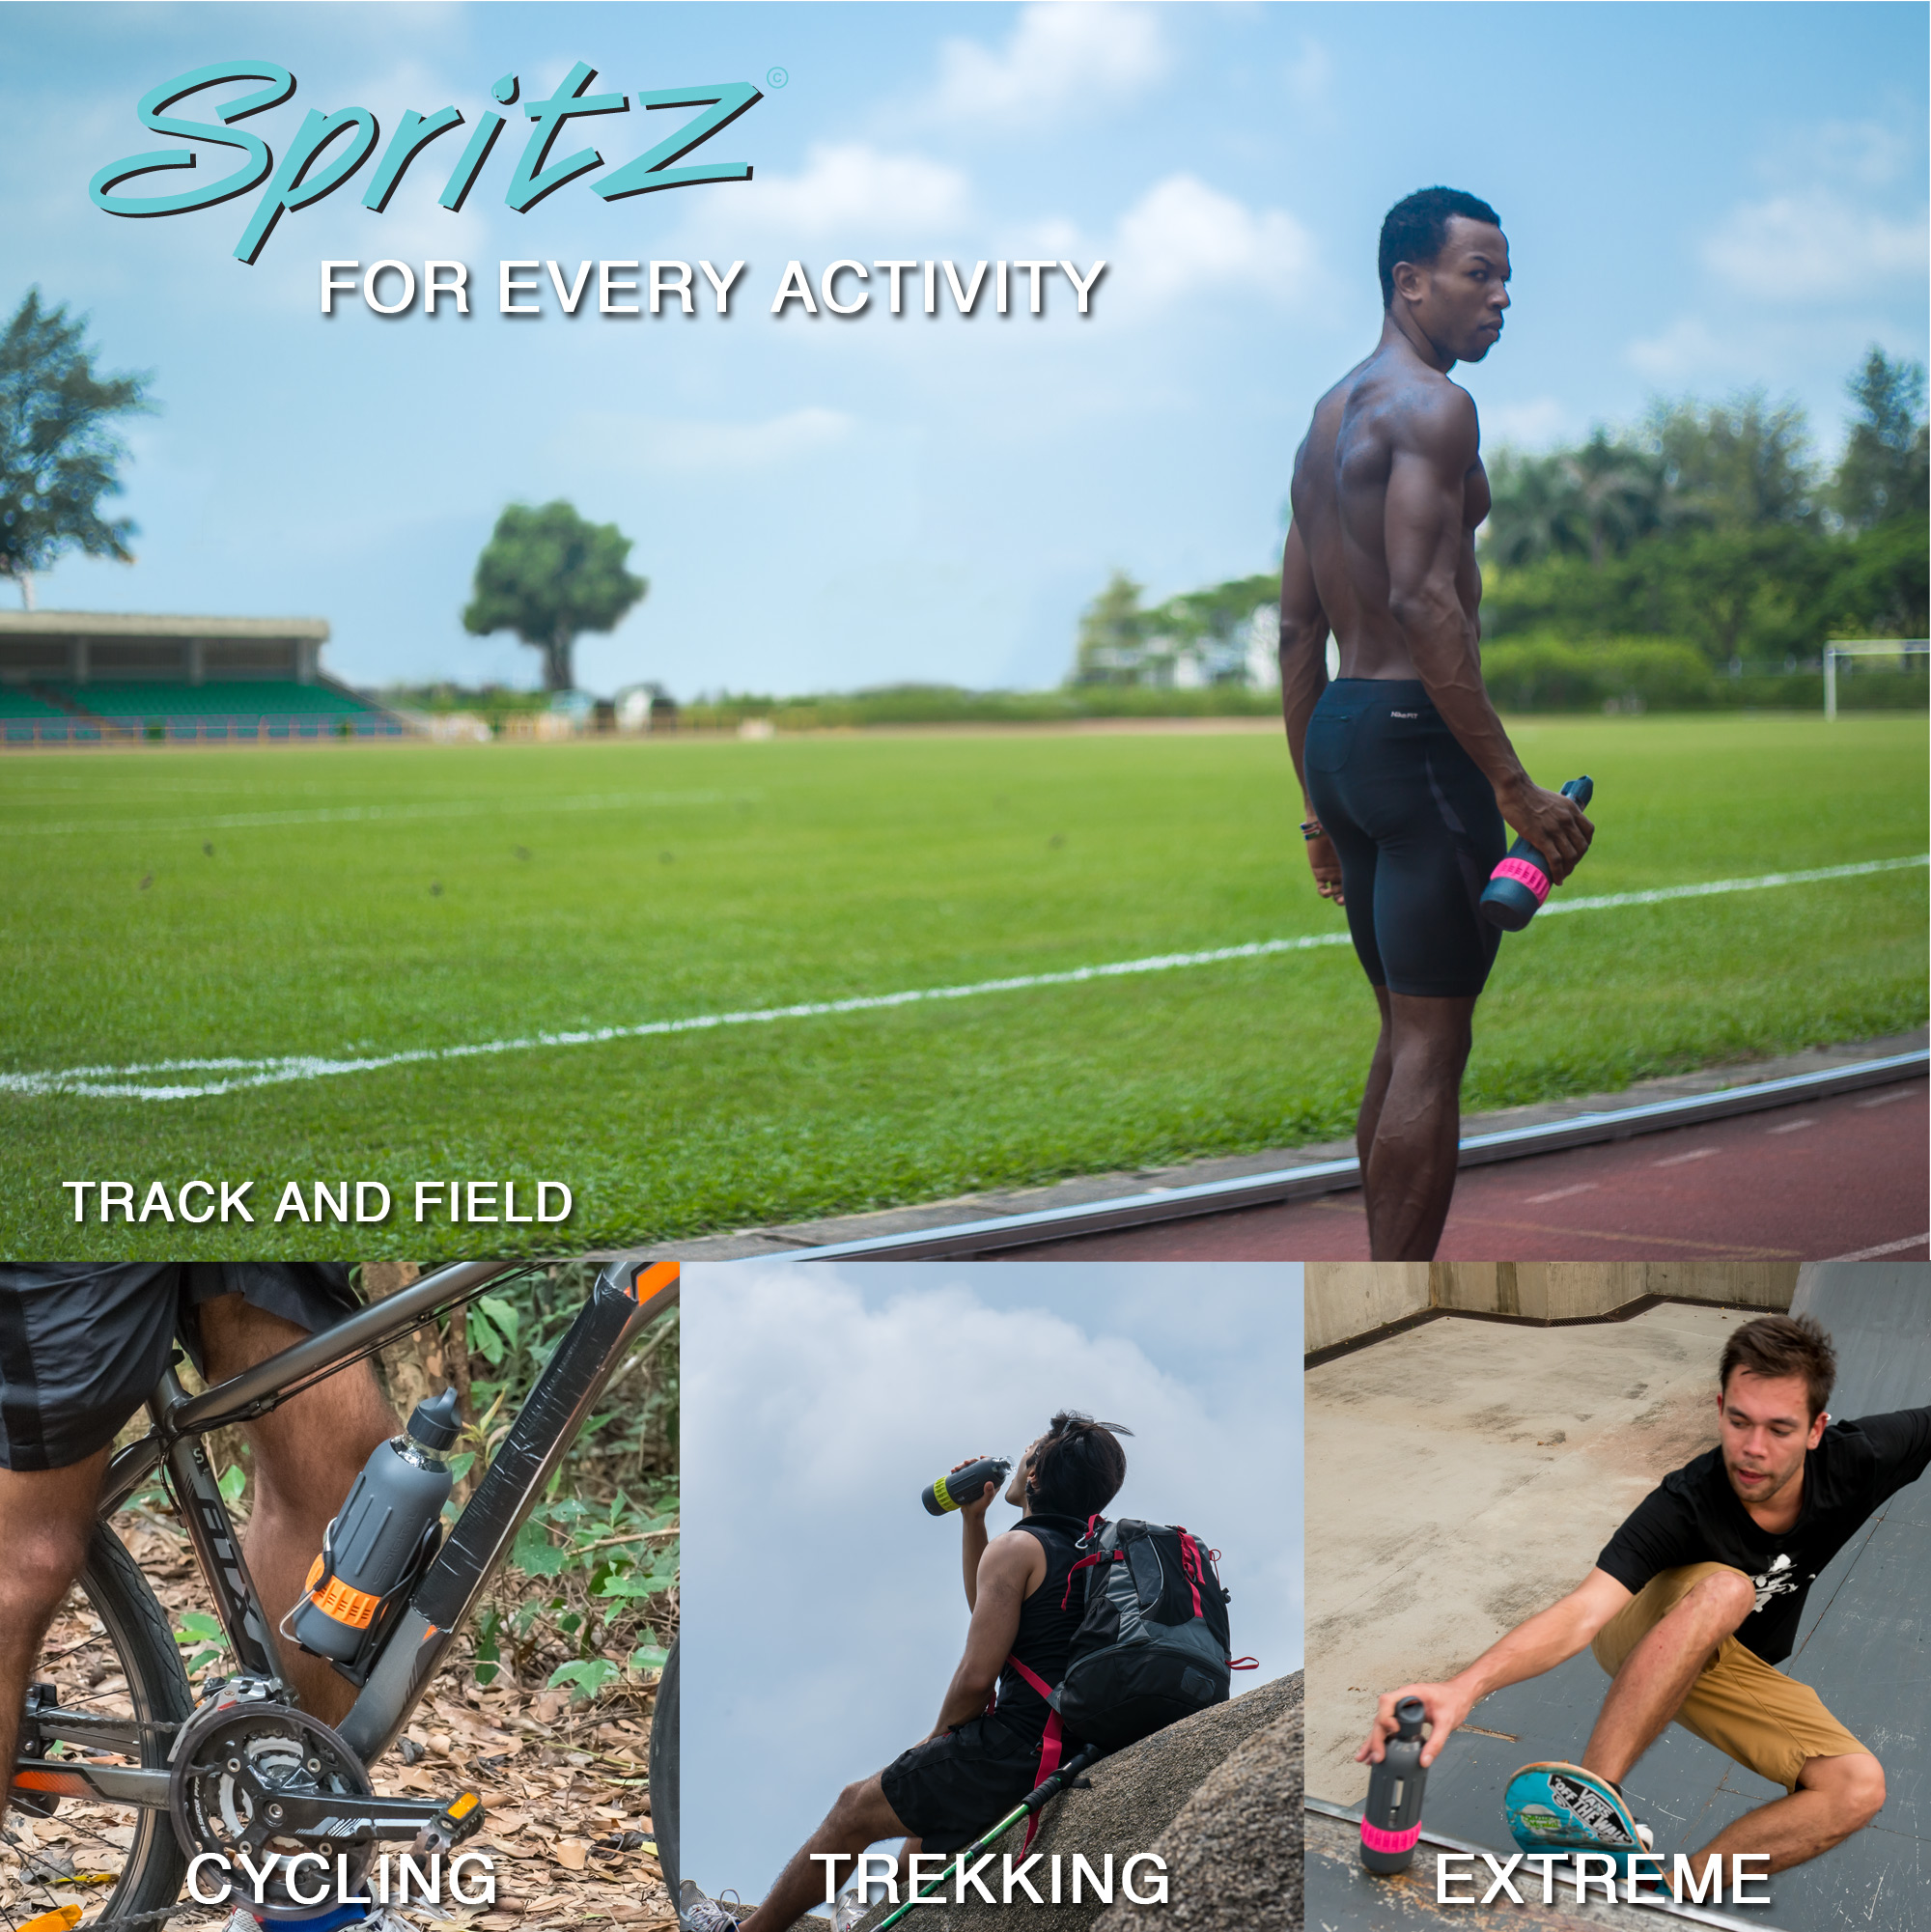 Spritz : For every Activity